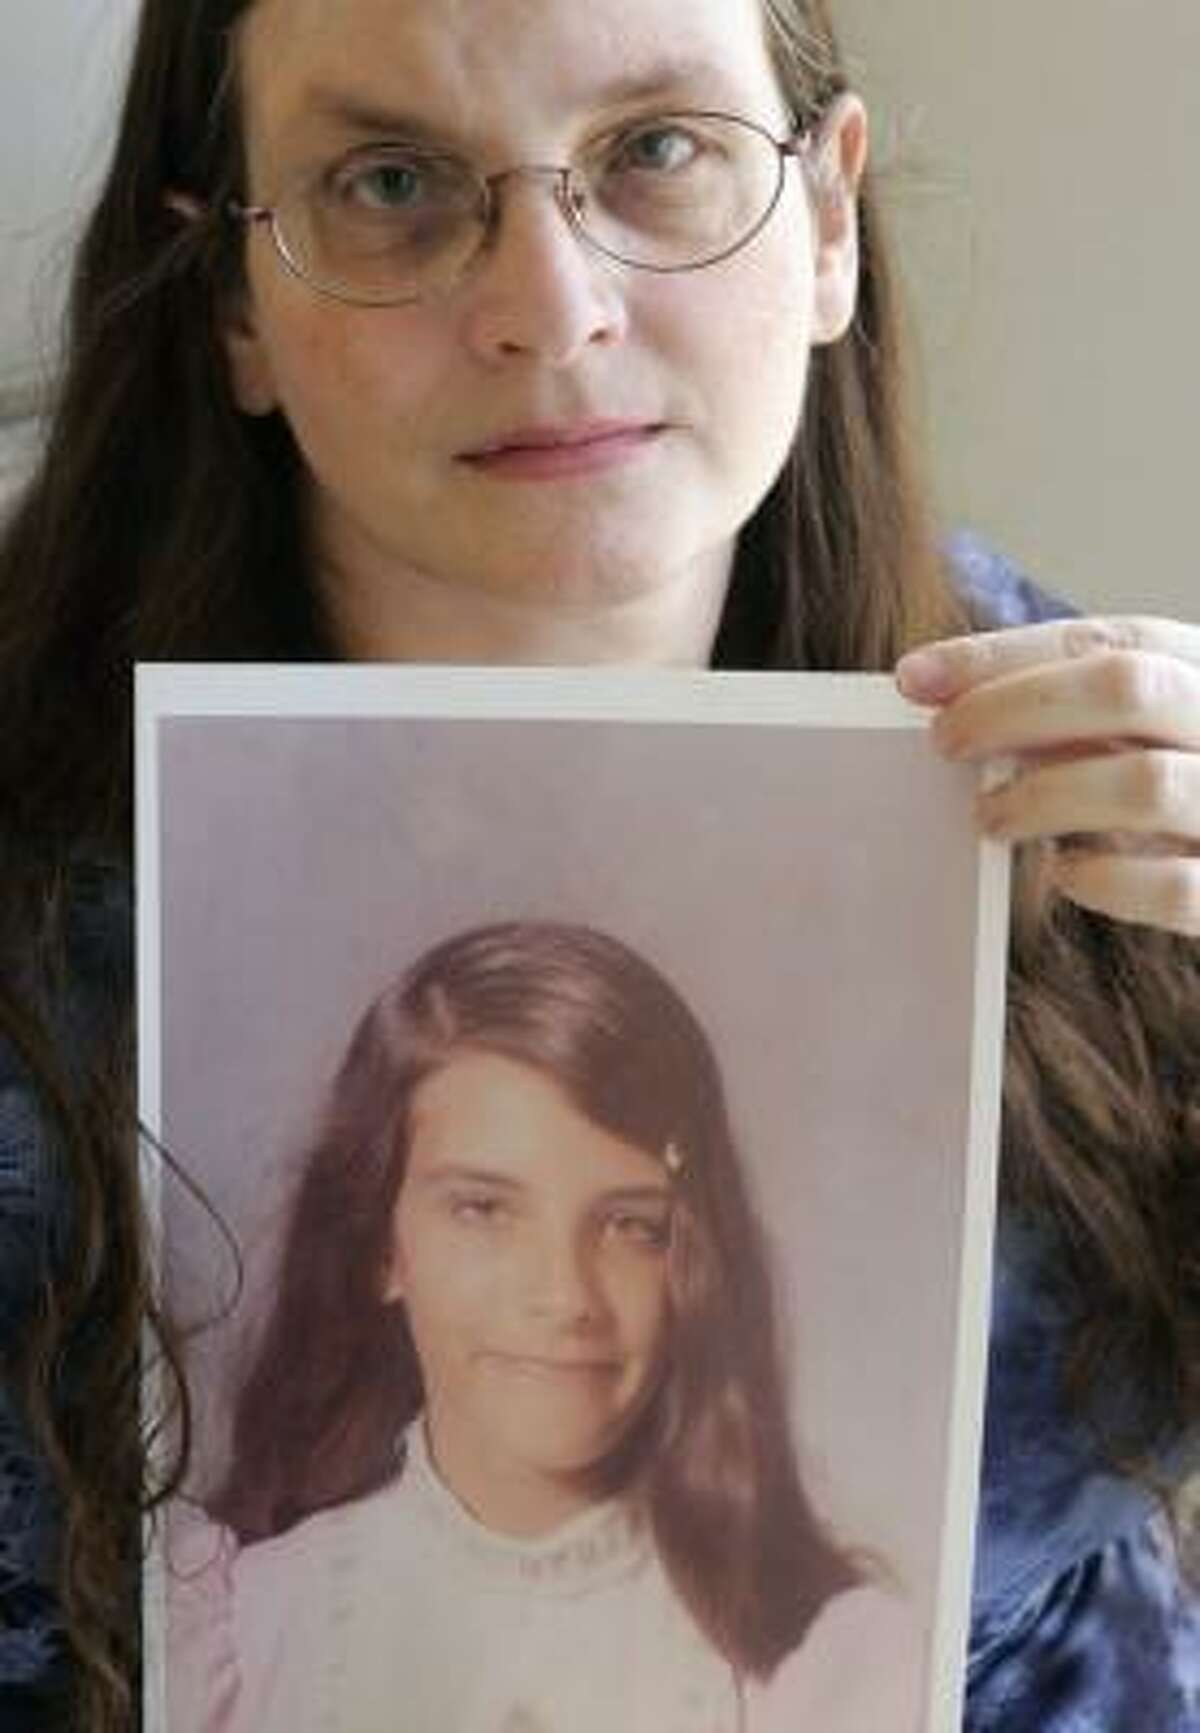 Debbie Vasquez, holding a photo of herself at 14, is suing the Rev. Dale